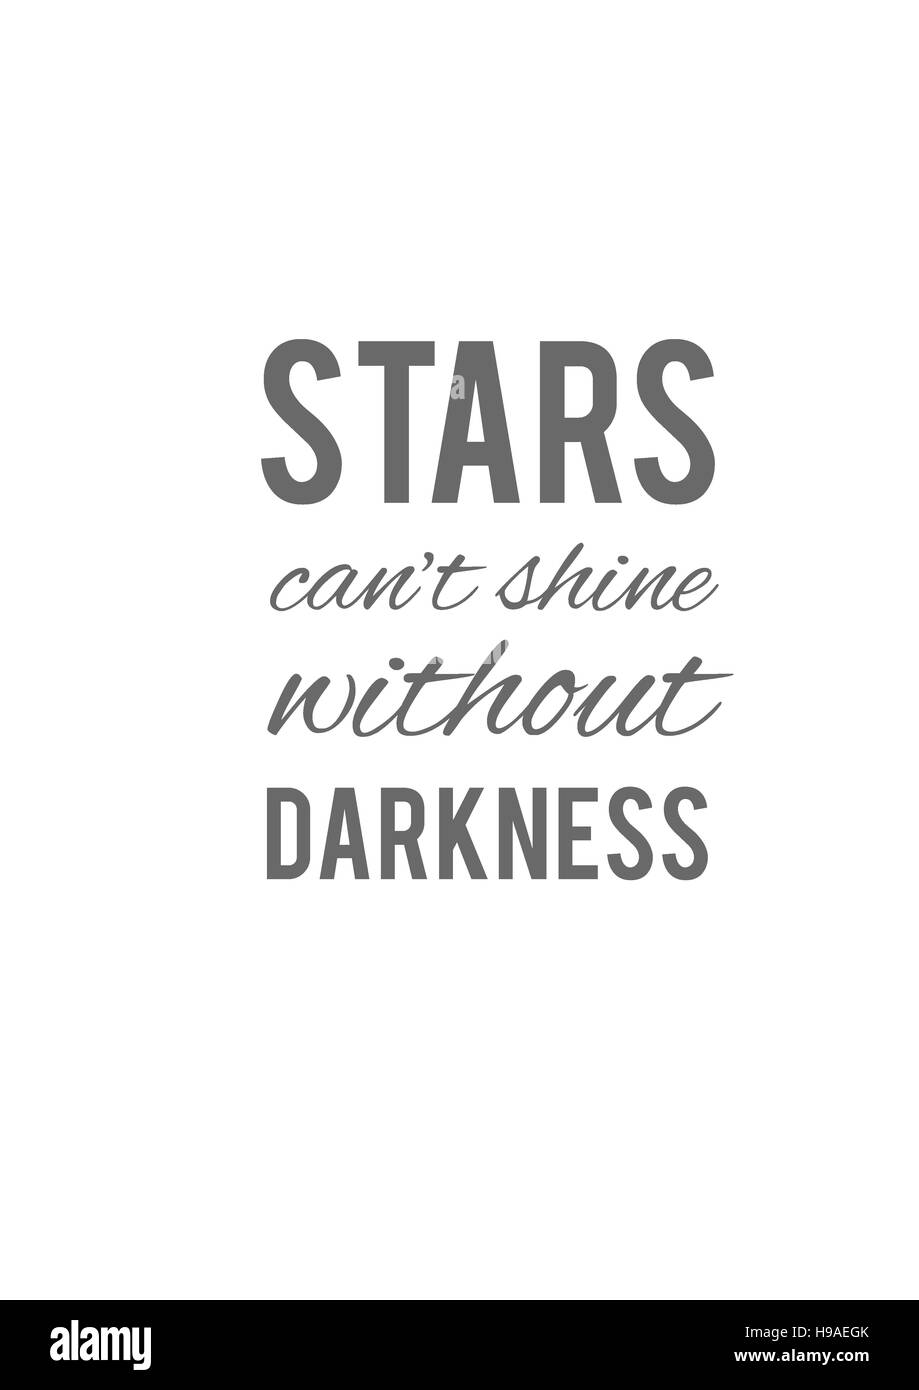 Stars can't shine without darkness. Motivation, poster, quotes, background, texture, white, illustration - Stock Image